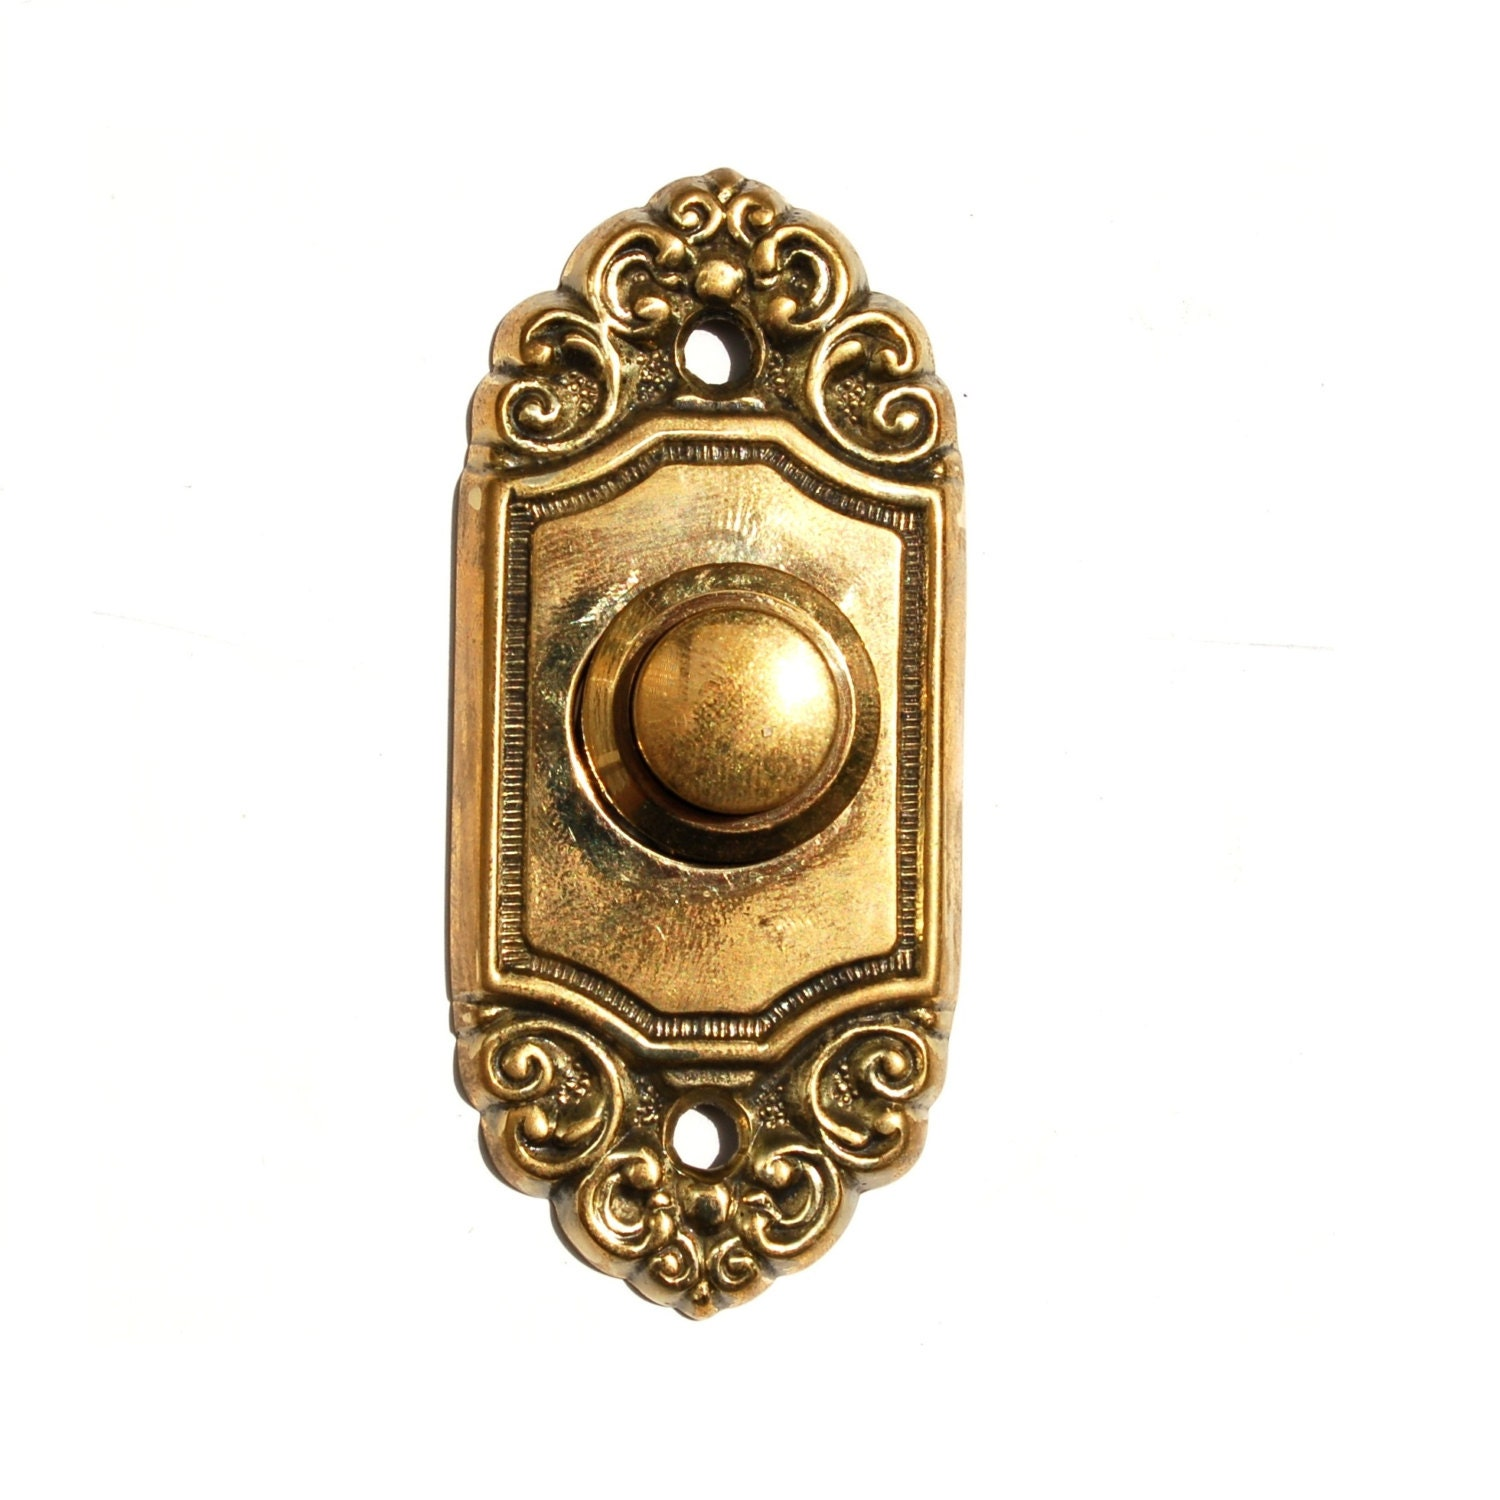 Antique Doorbell Push Button Art Nouveau Brass By Knockplease